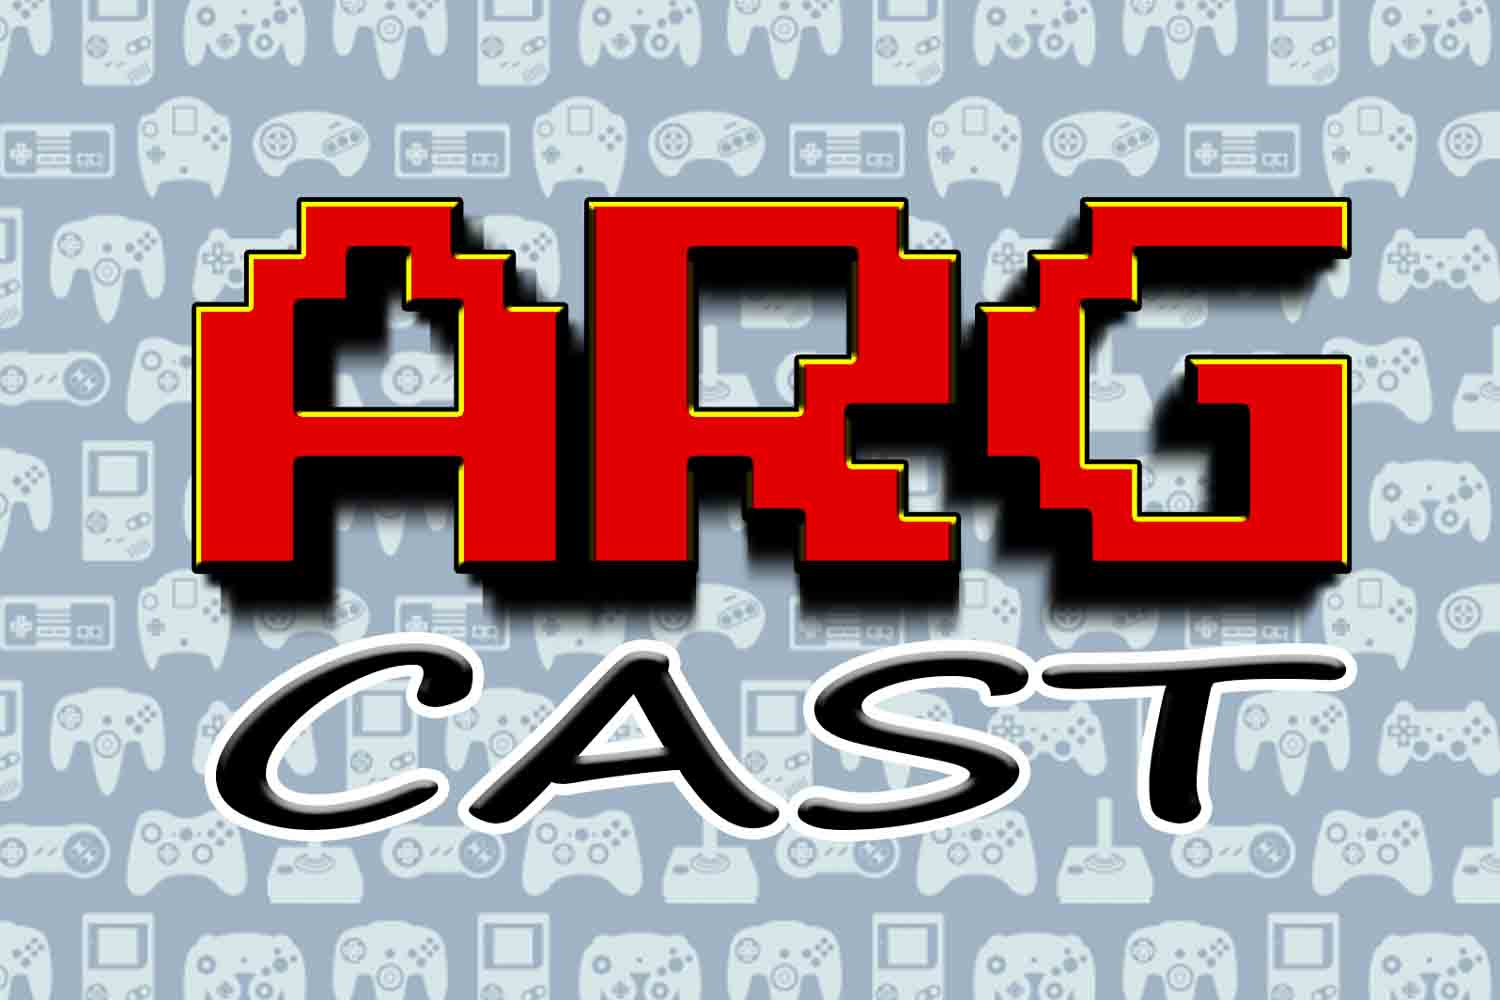 ARGcast - Another Retro Gaming Podcast